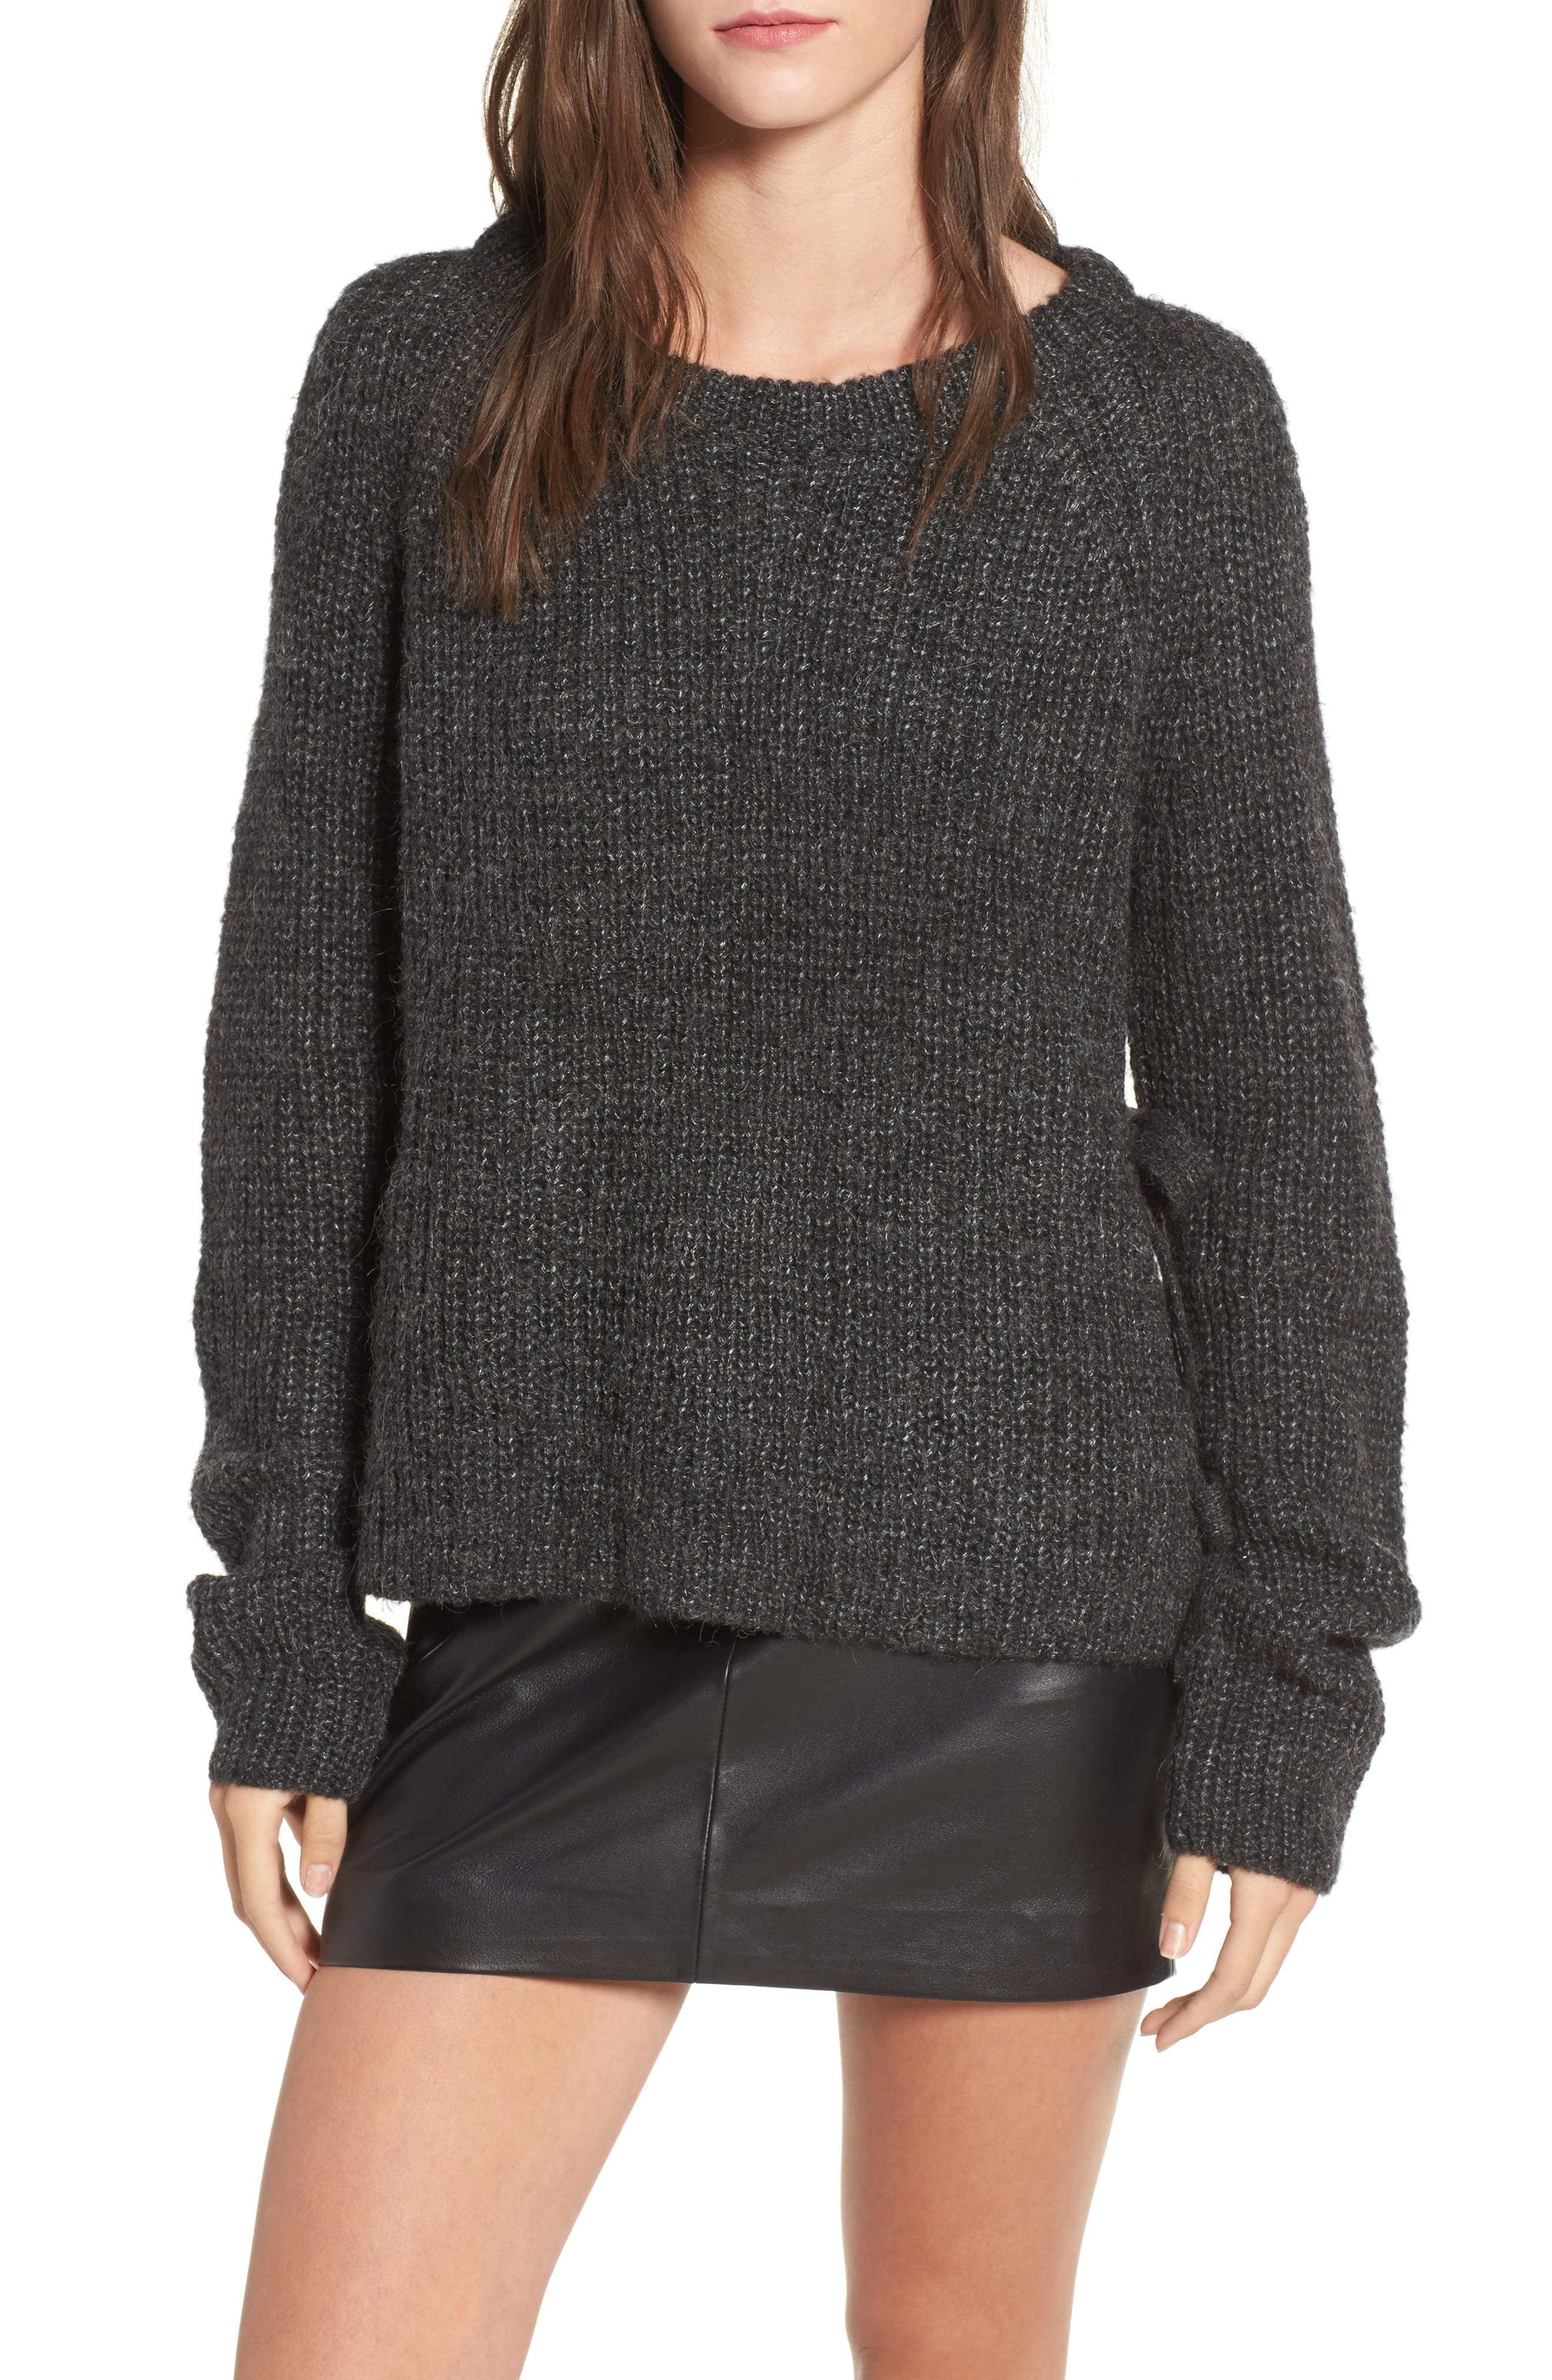 Lexie Side Tie Sweater,                             Main thumbnail 1, color,                             020